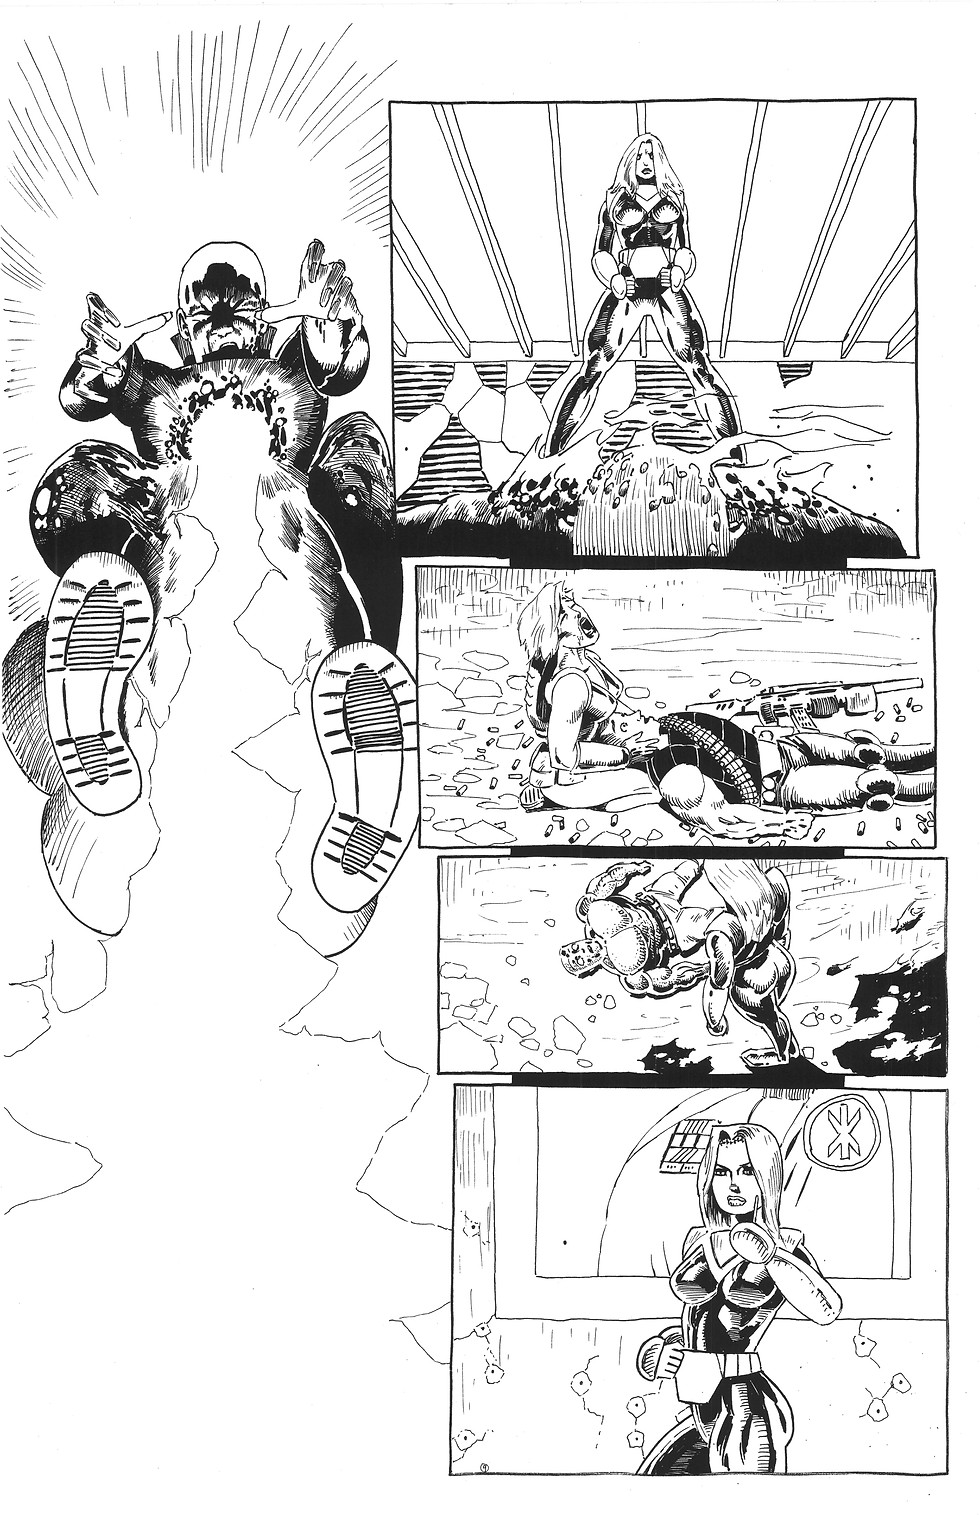 Live Wire Issue 1 (pages 9-14).jpg